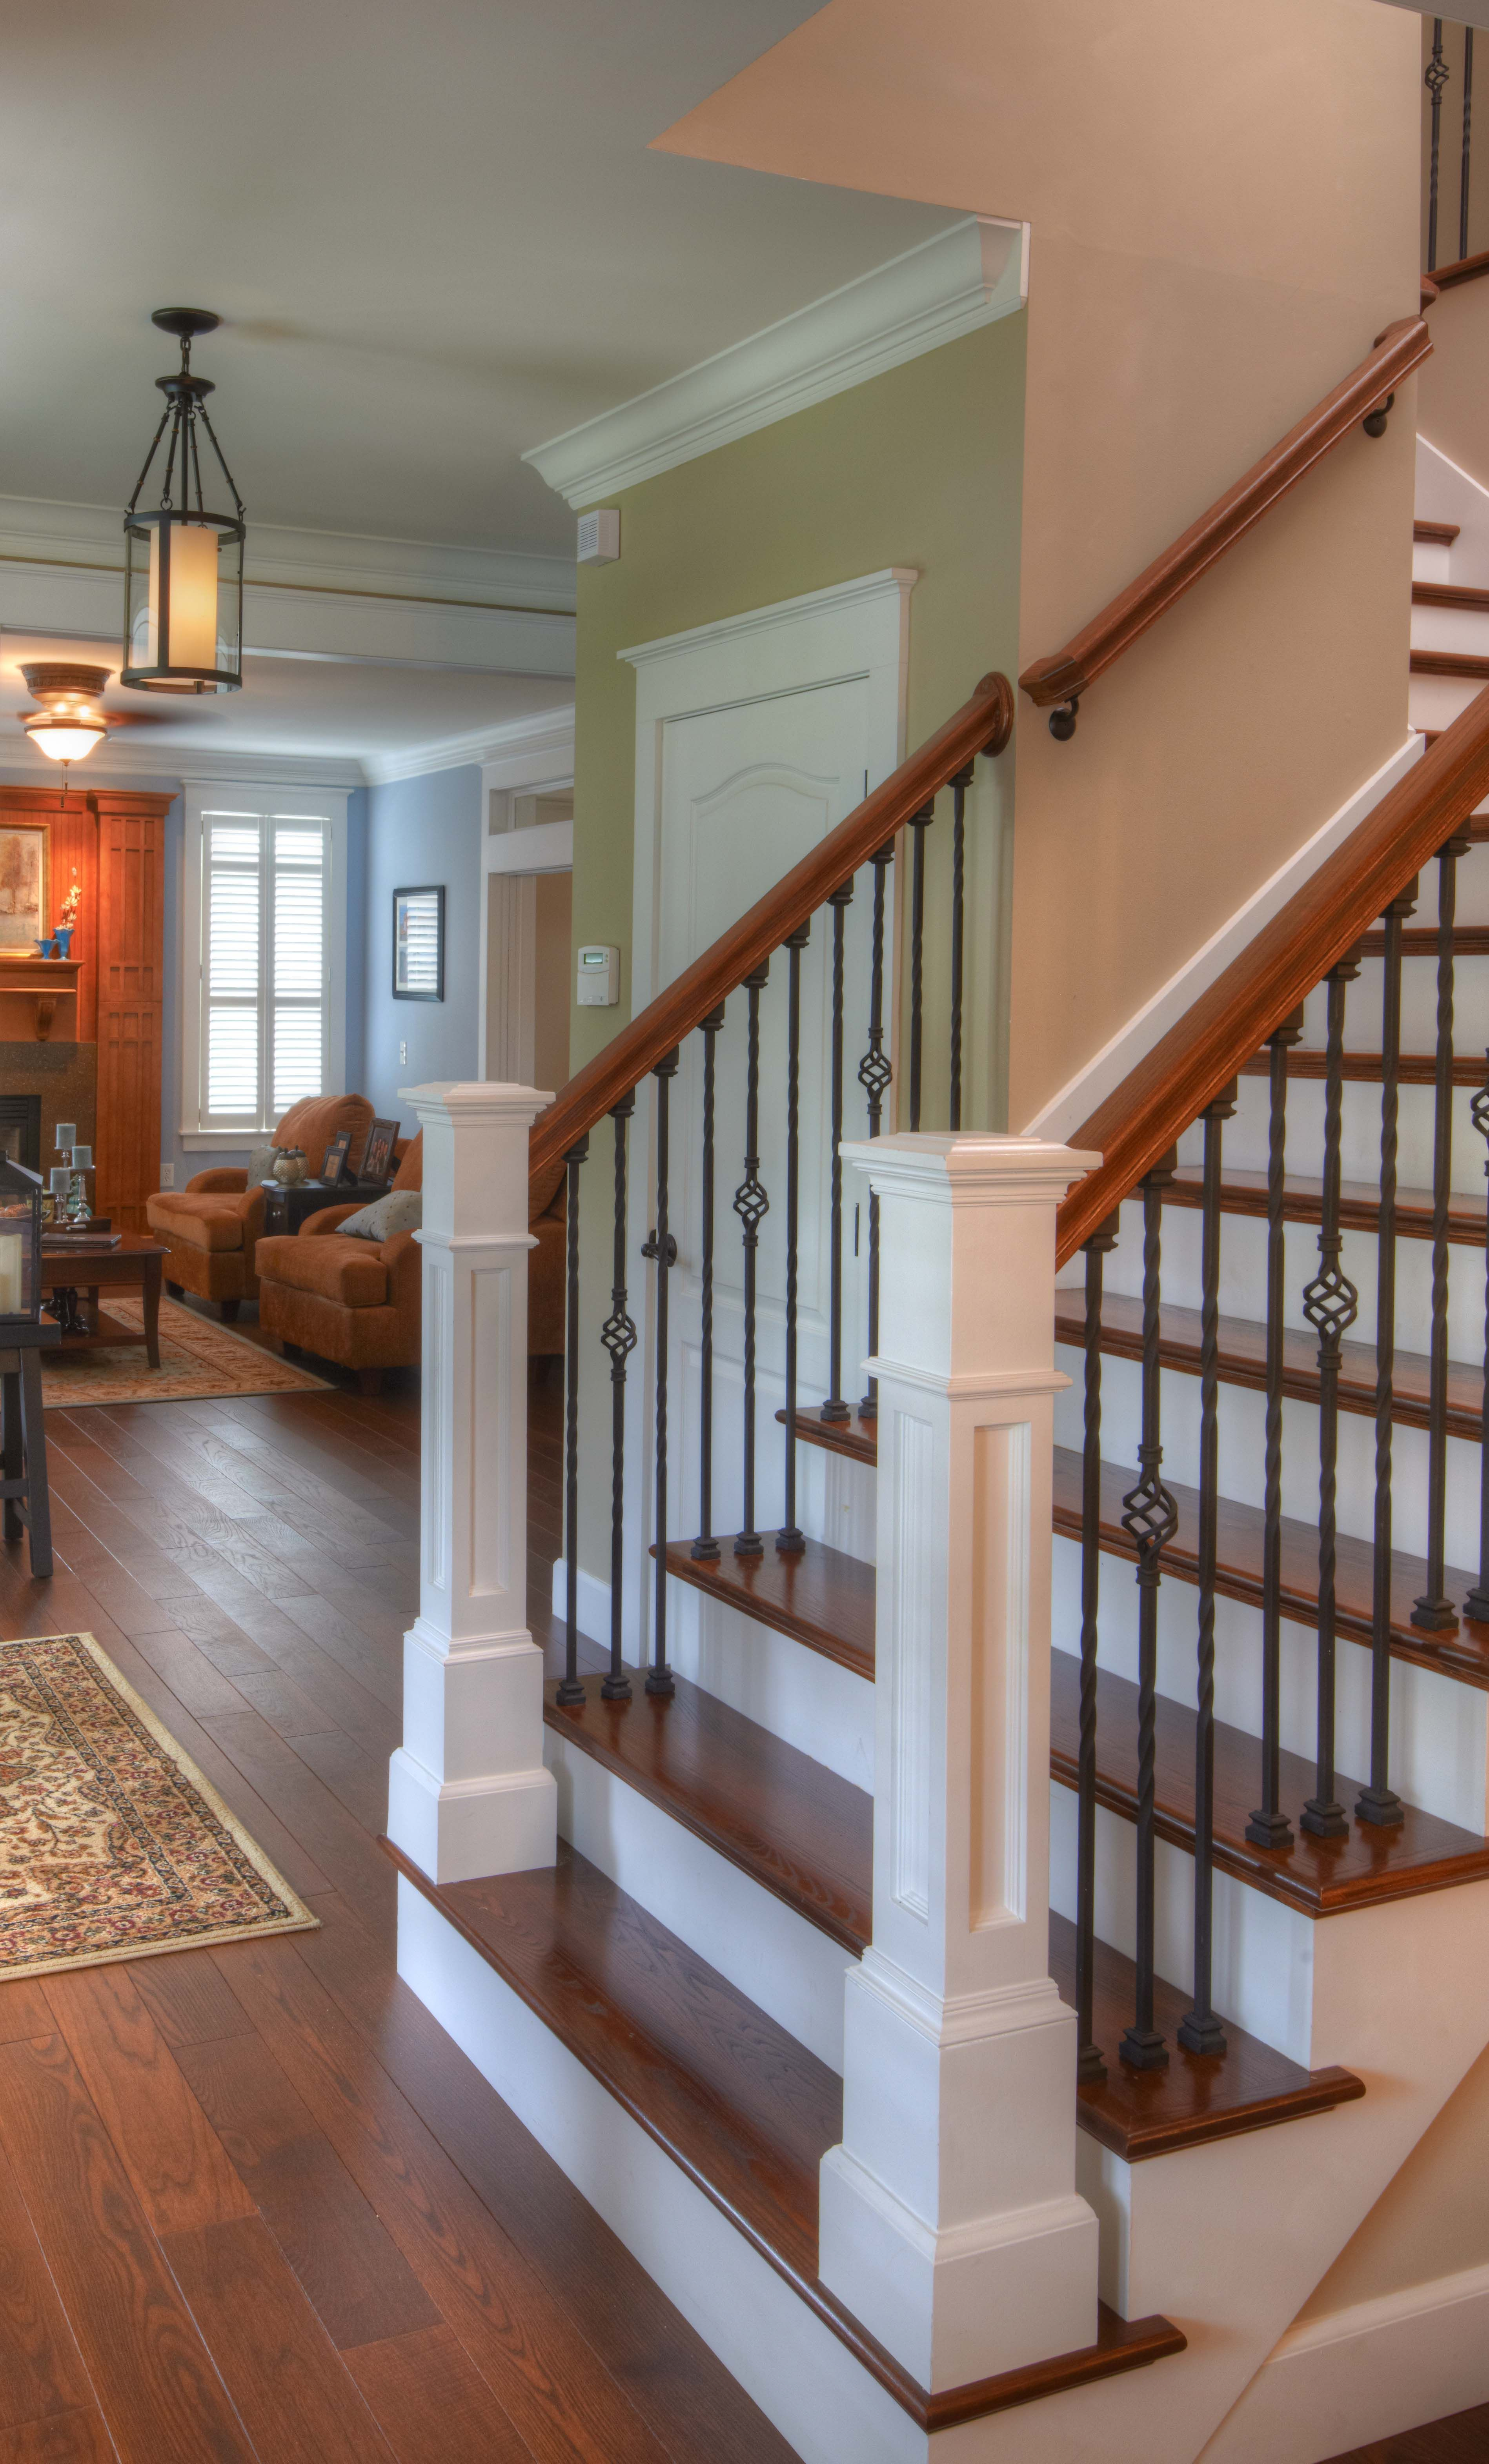 Home Staircase Ideas, Staircase Decorating Ideas | Good